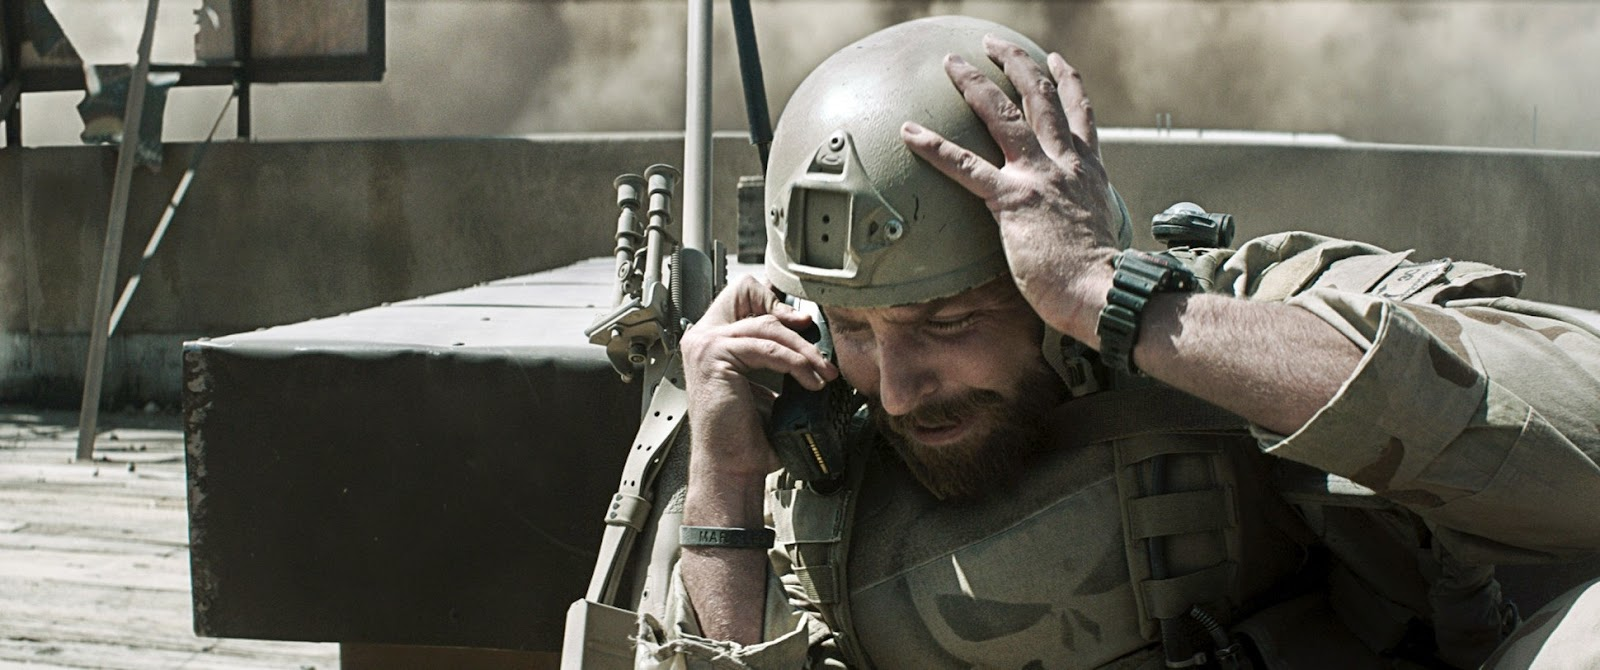 american sniper vs foxcatcher not your typical oscar coverage american sniper vs foxcatcher not your typical oscar coverage film static criticism and essay by jarrod white